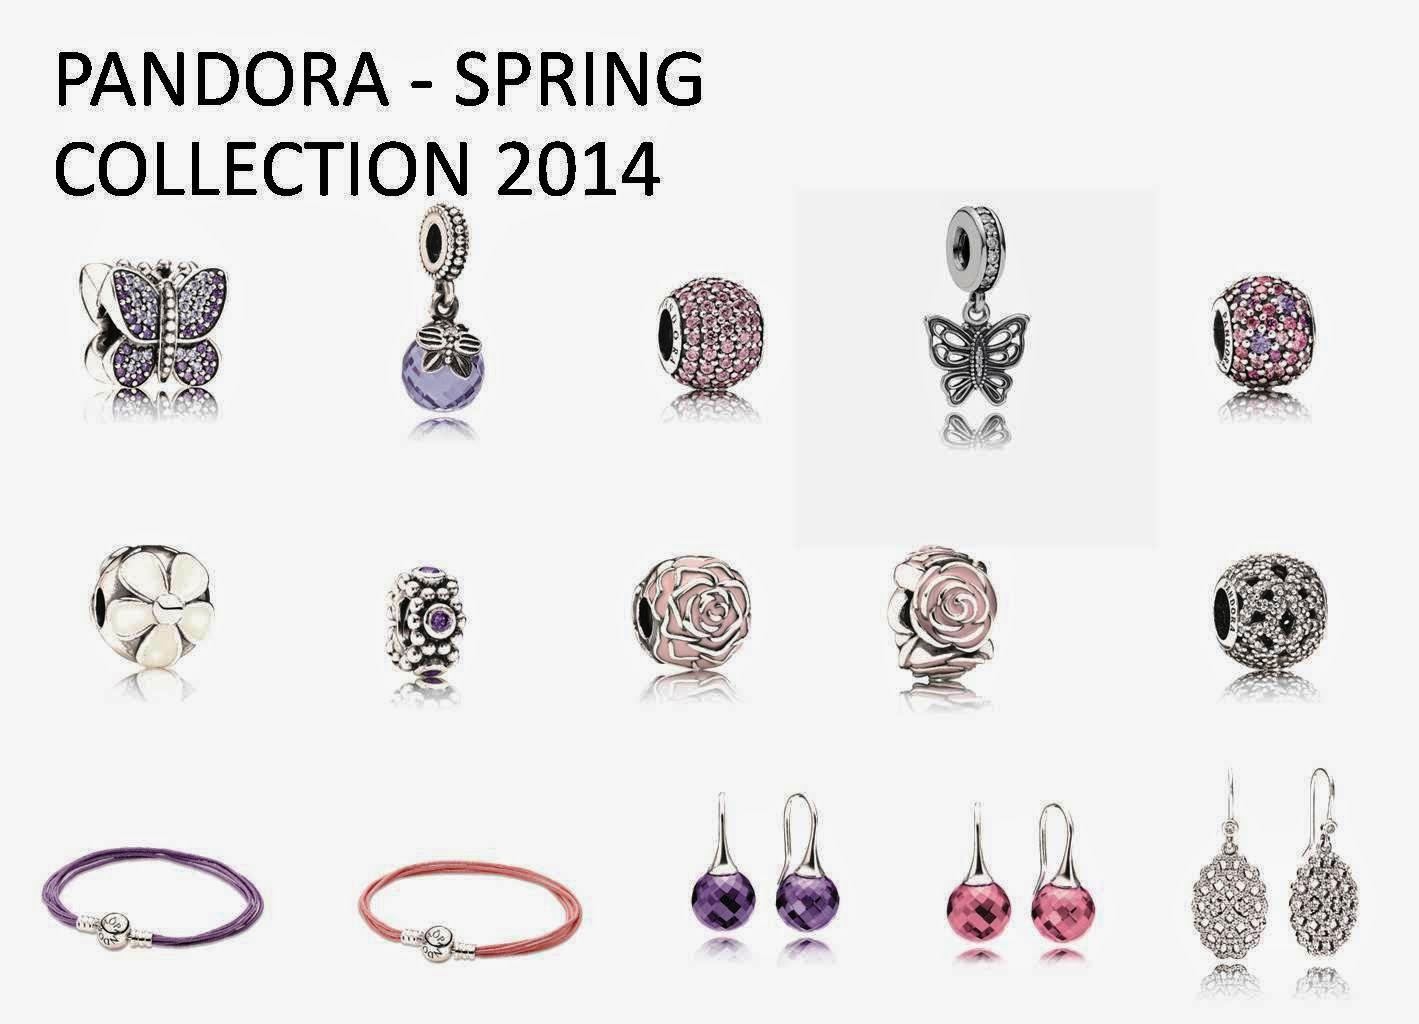 Pandora Spring Collection 2014, pandora charms, pandora spring collection, Soft Spring Flora, Delicate Butterflies, Sparkling Butterfly, Flora Brilliance, pink mix pave ball, home sweet home, my sweet pet charm